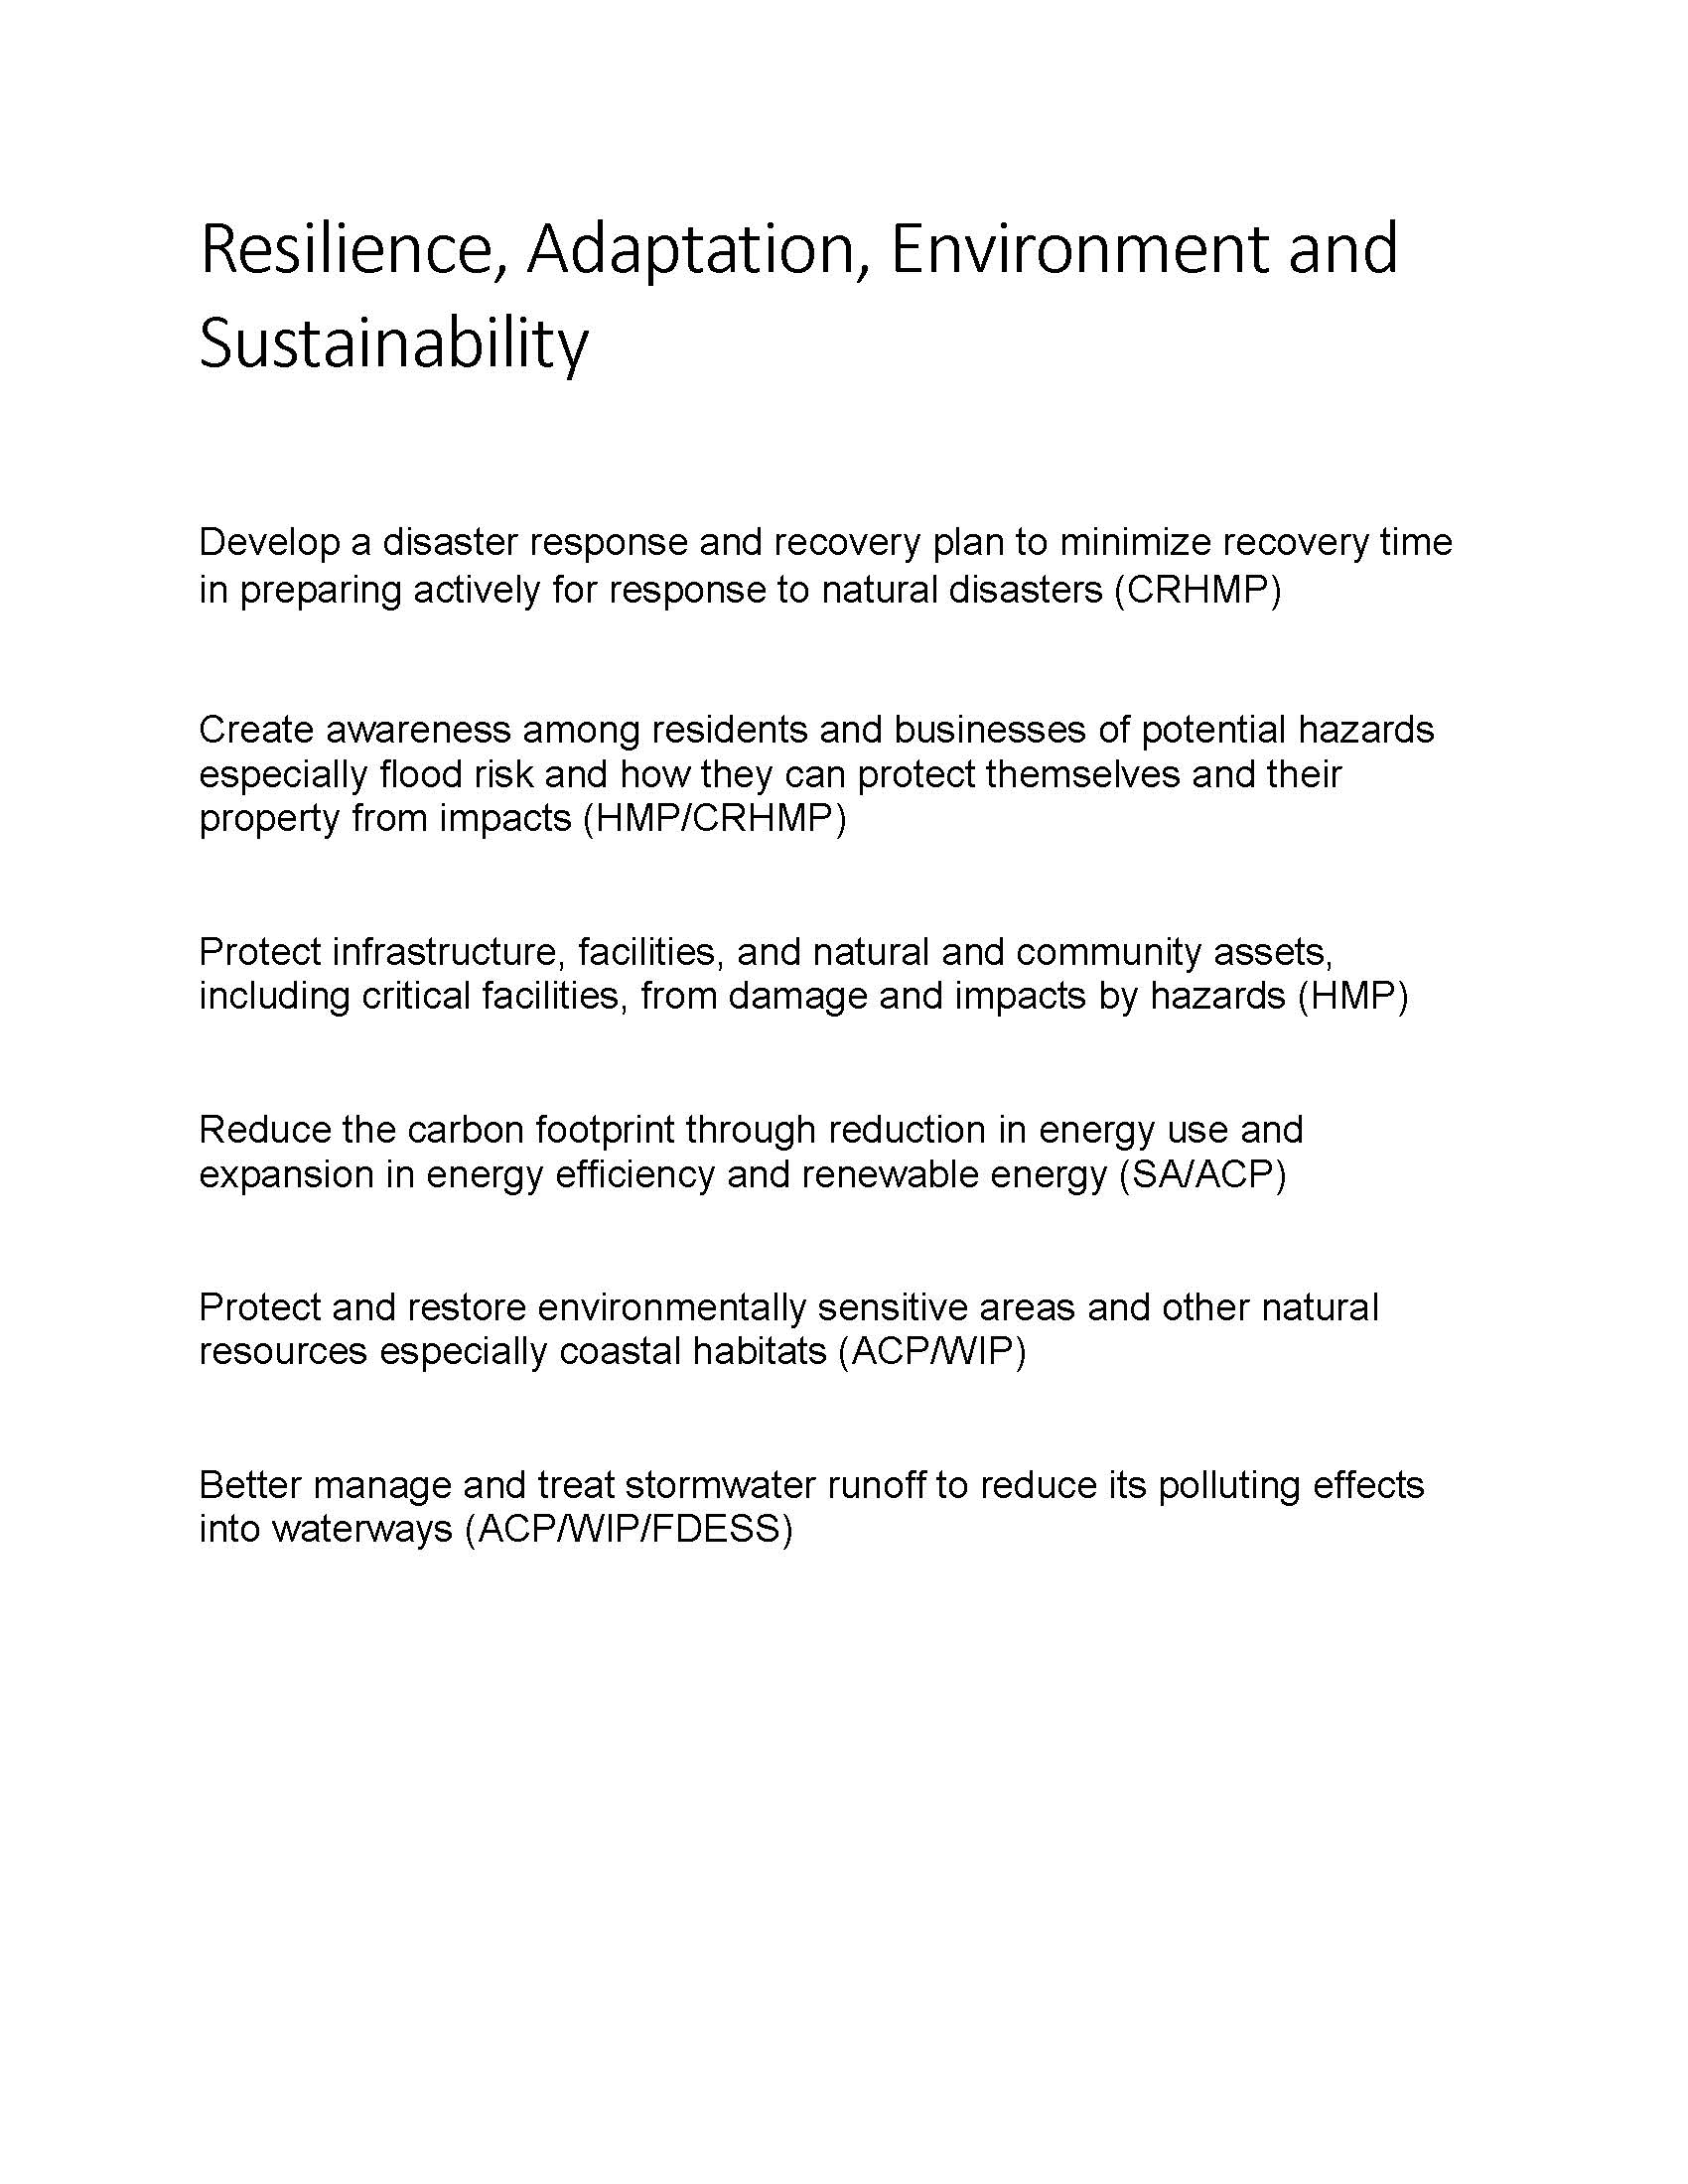 Resilience, Adaptation, Environment and Sustainability Goals